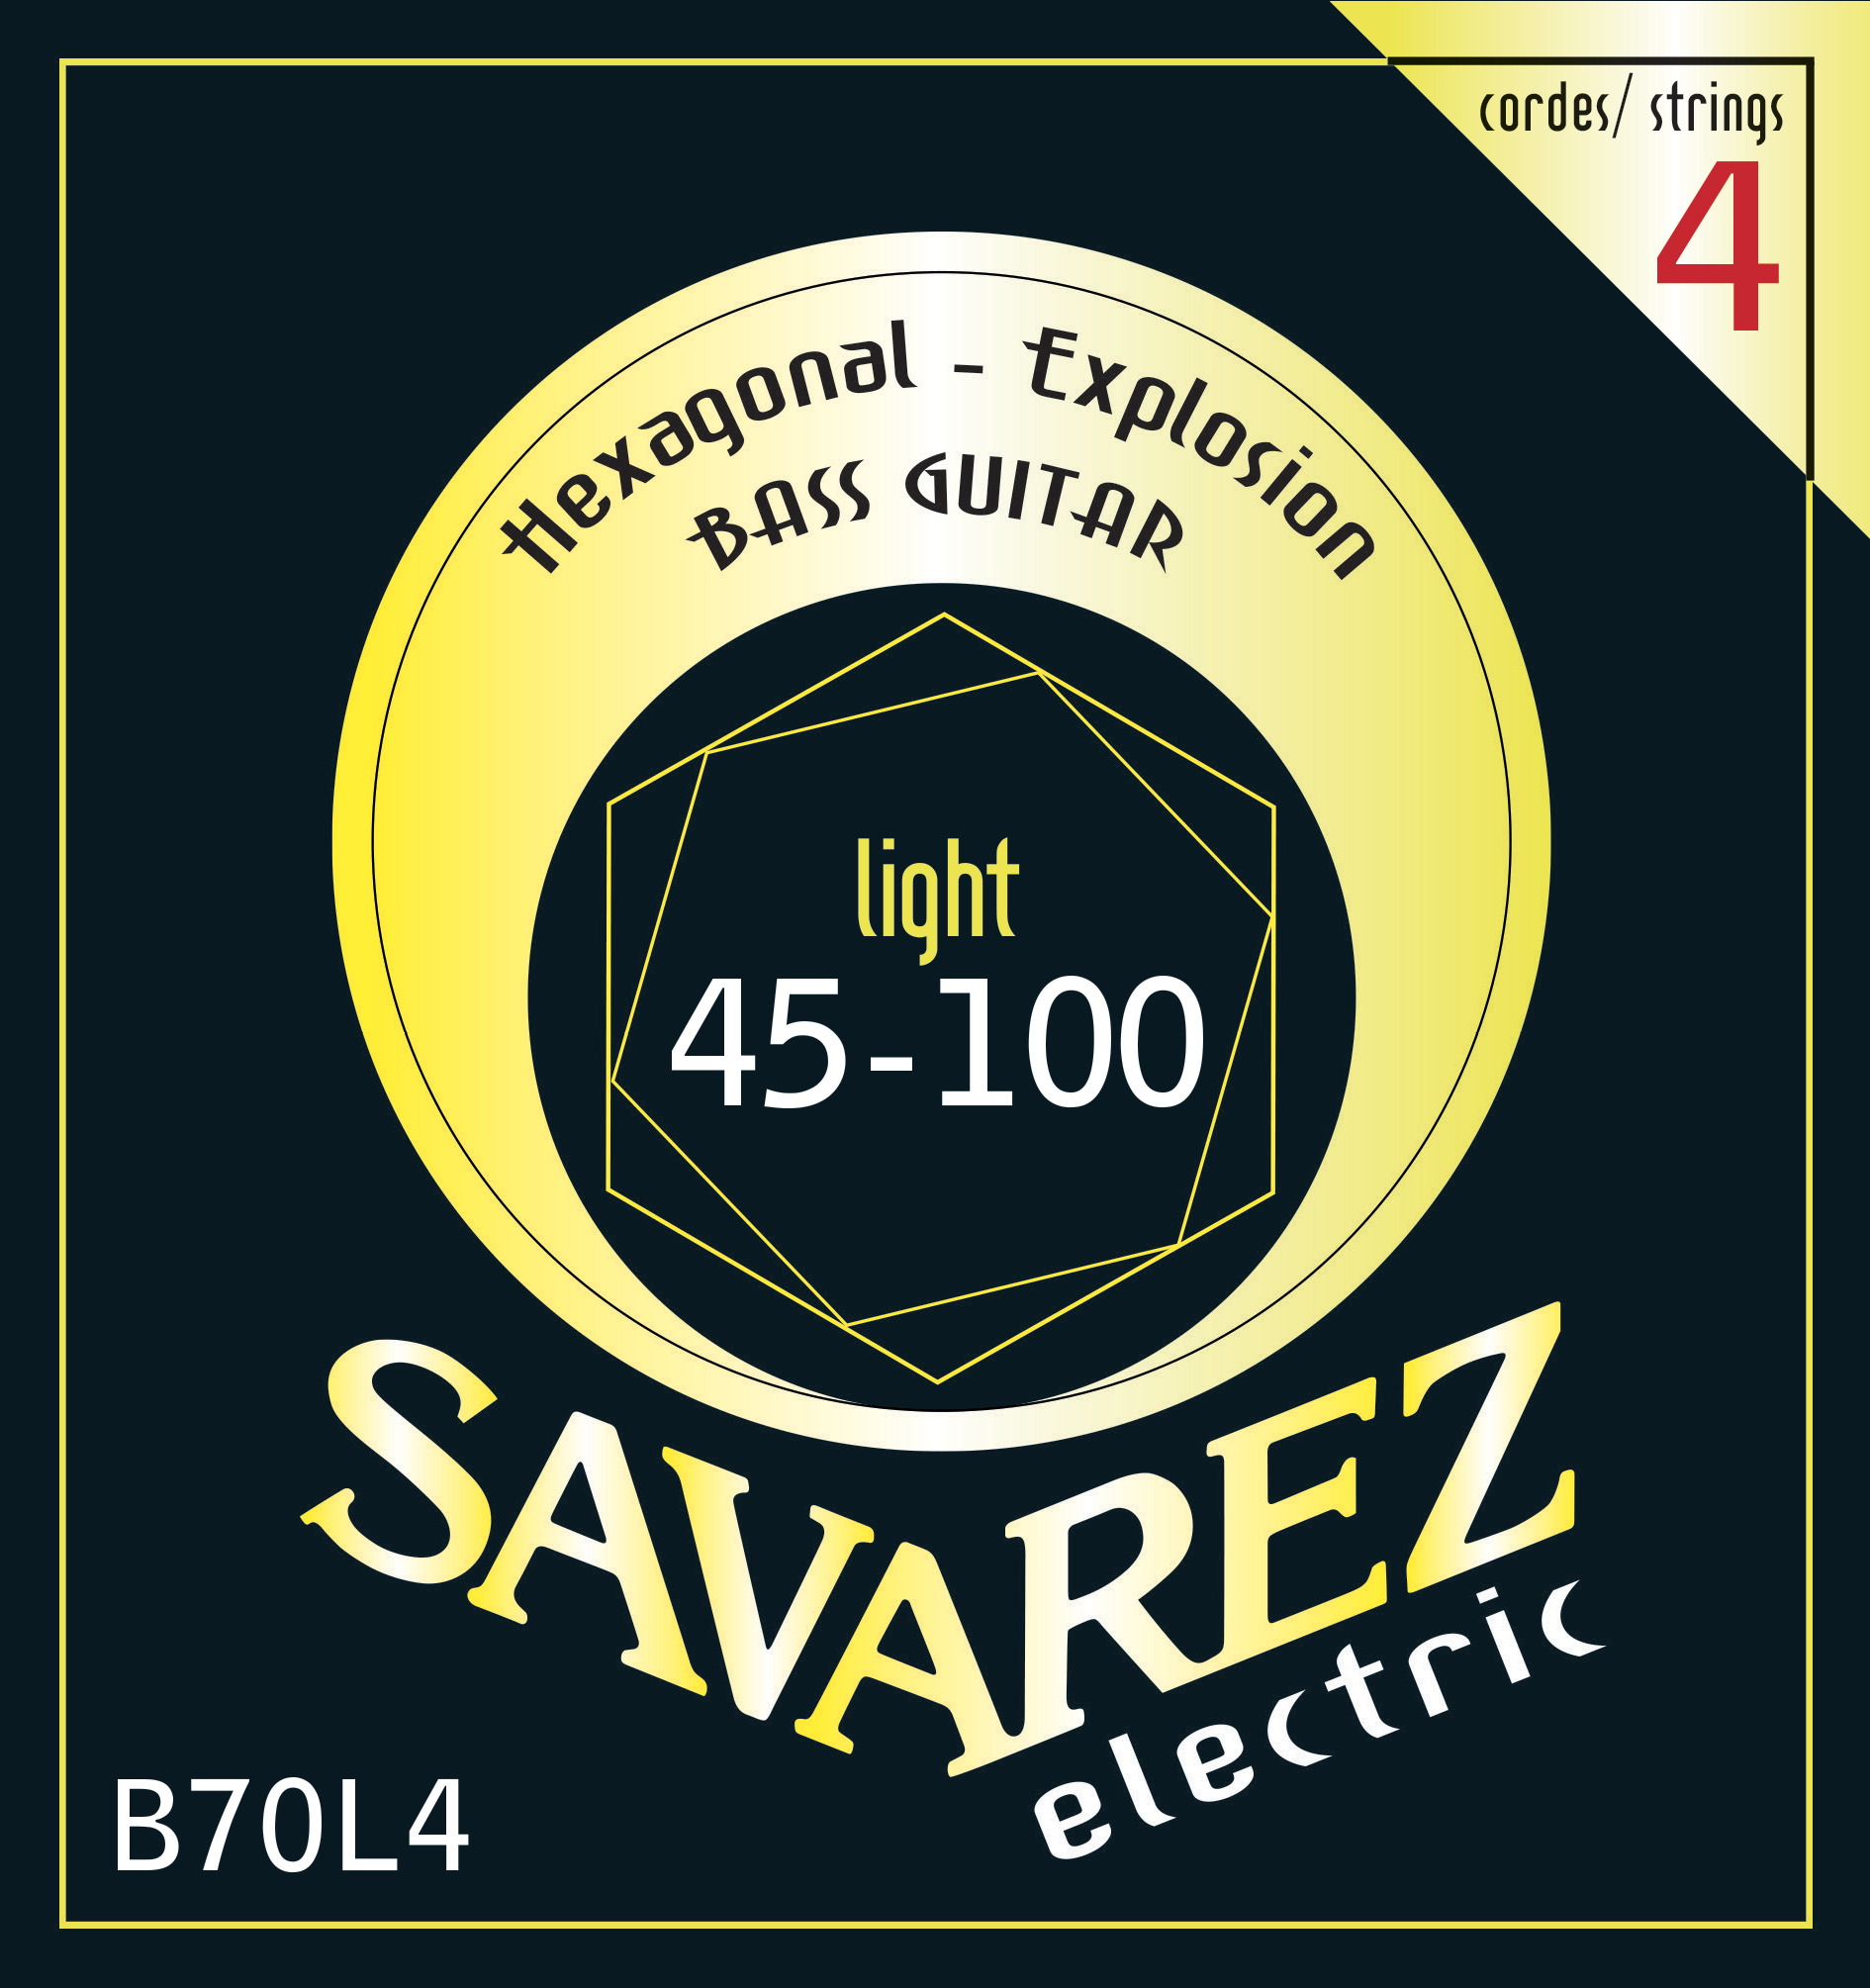 SAVAREZ ELECTRIC HEXAGONAL EXPLOSION BASSE B70L4